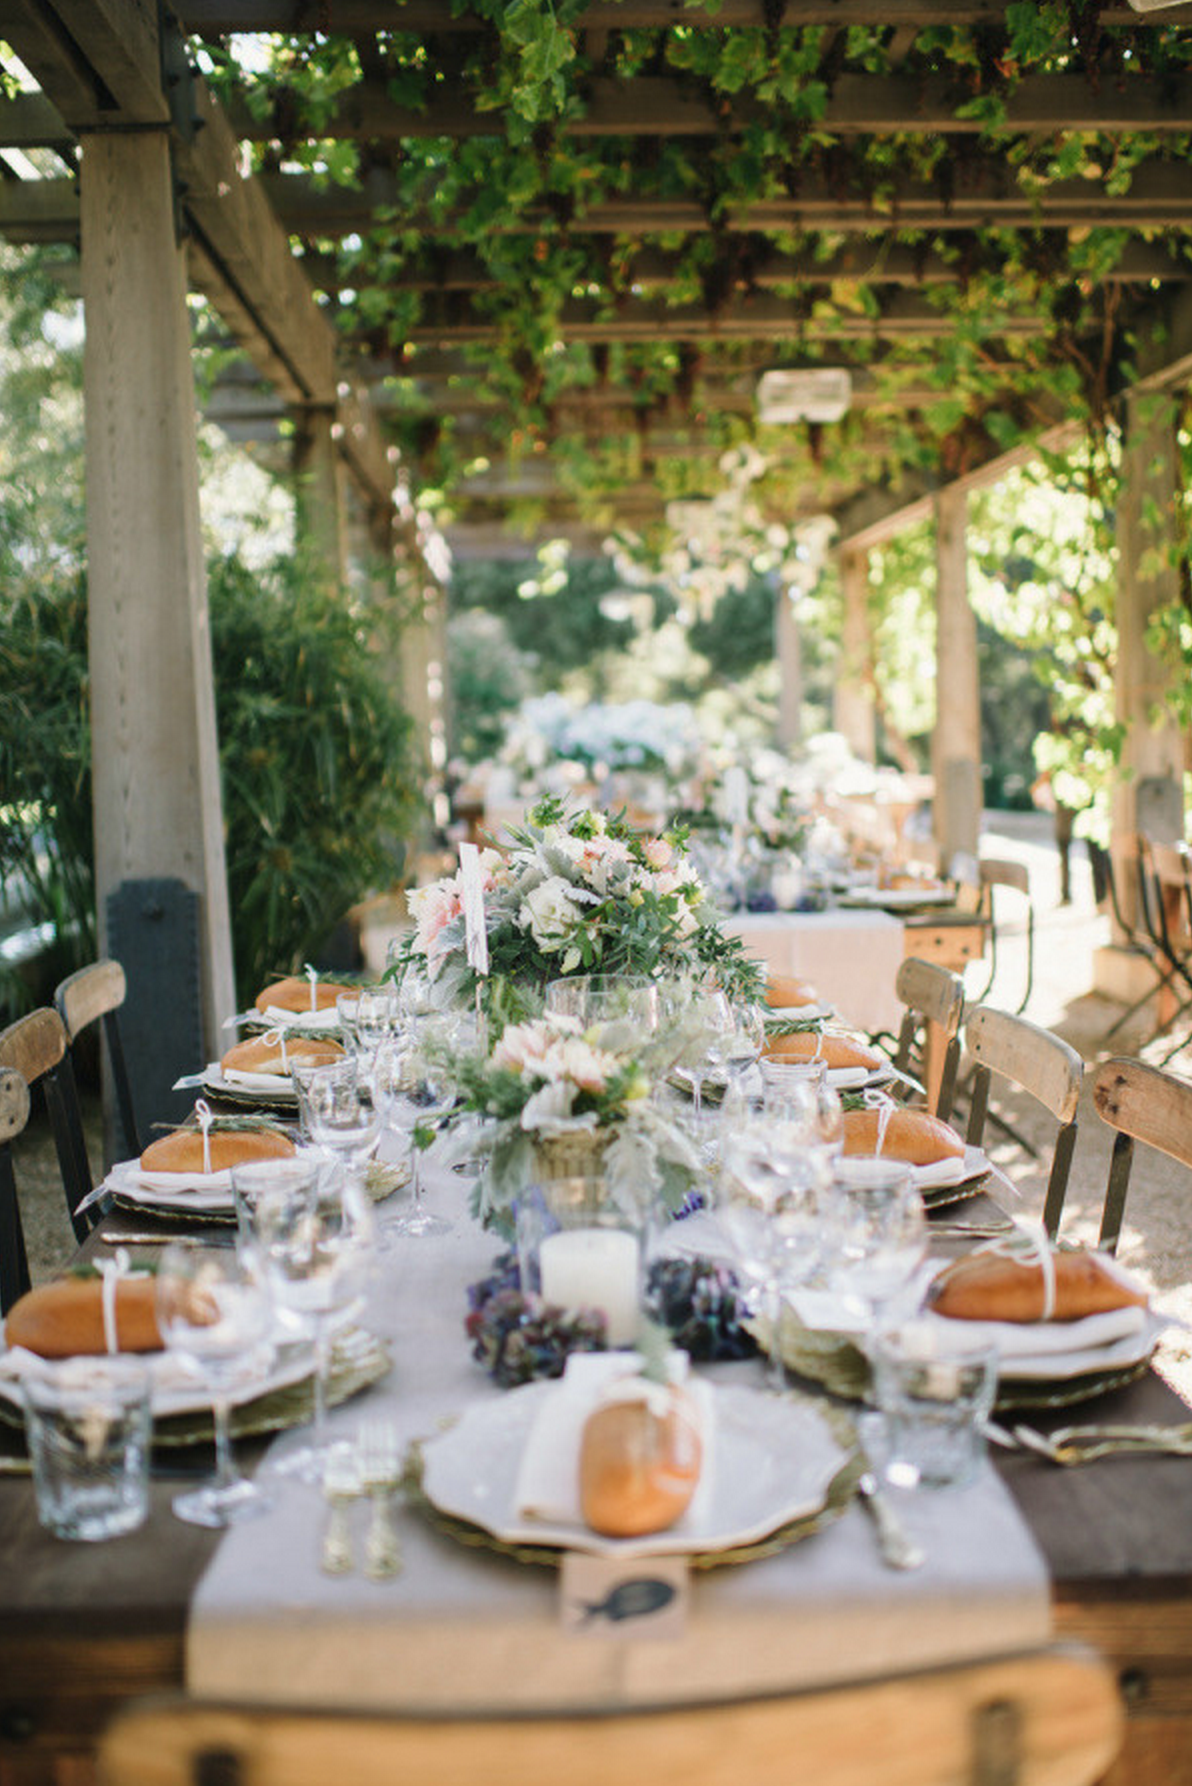 7. Carmel Valley Wedding from Delbarr Moradi + Simone Lennon on Style me Pretty:  Gold chargers ,  natural Linens  and whole loaves of bread as your place card setting?Don't mind if I do. #carbday